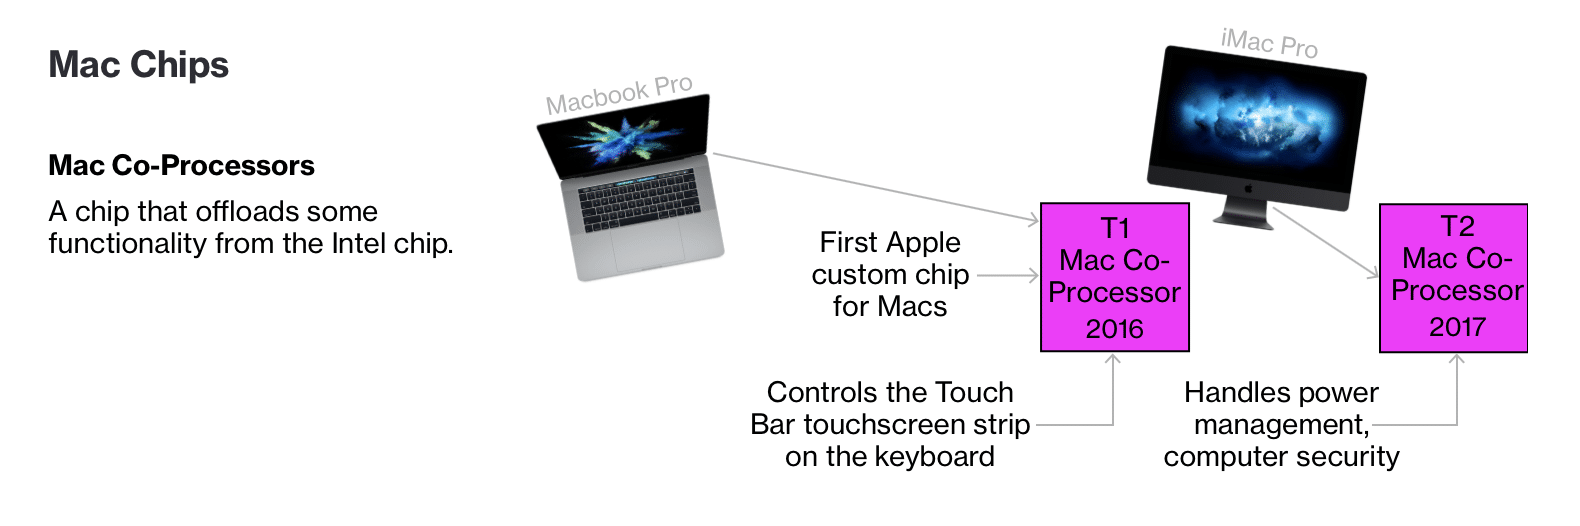 bloomberg-three-new-macs-with-apple-coprocessors-in-development-new-ipad-in-fall 2